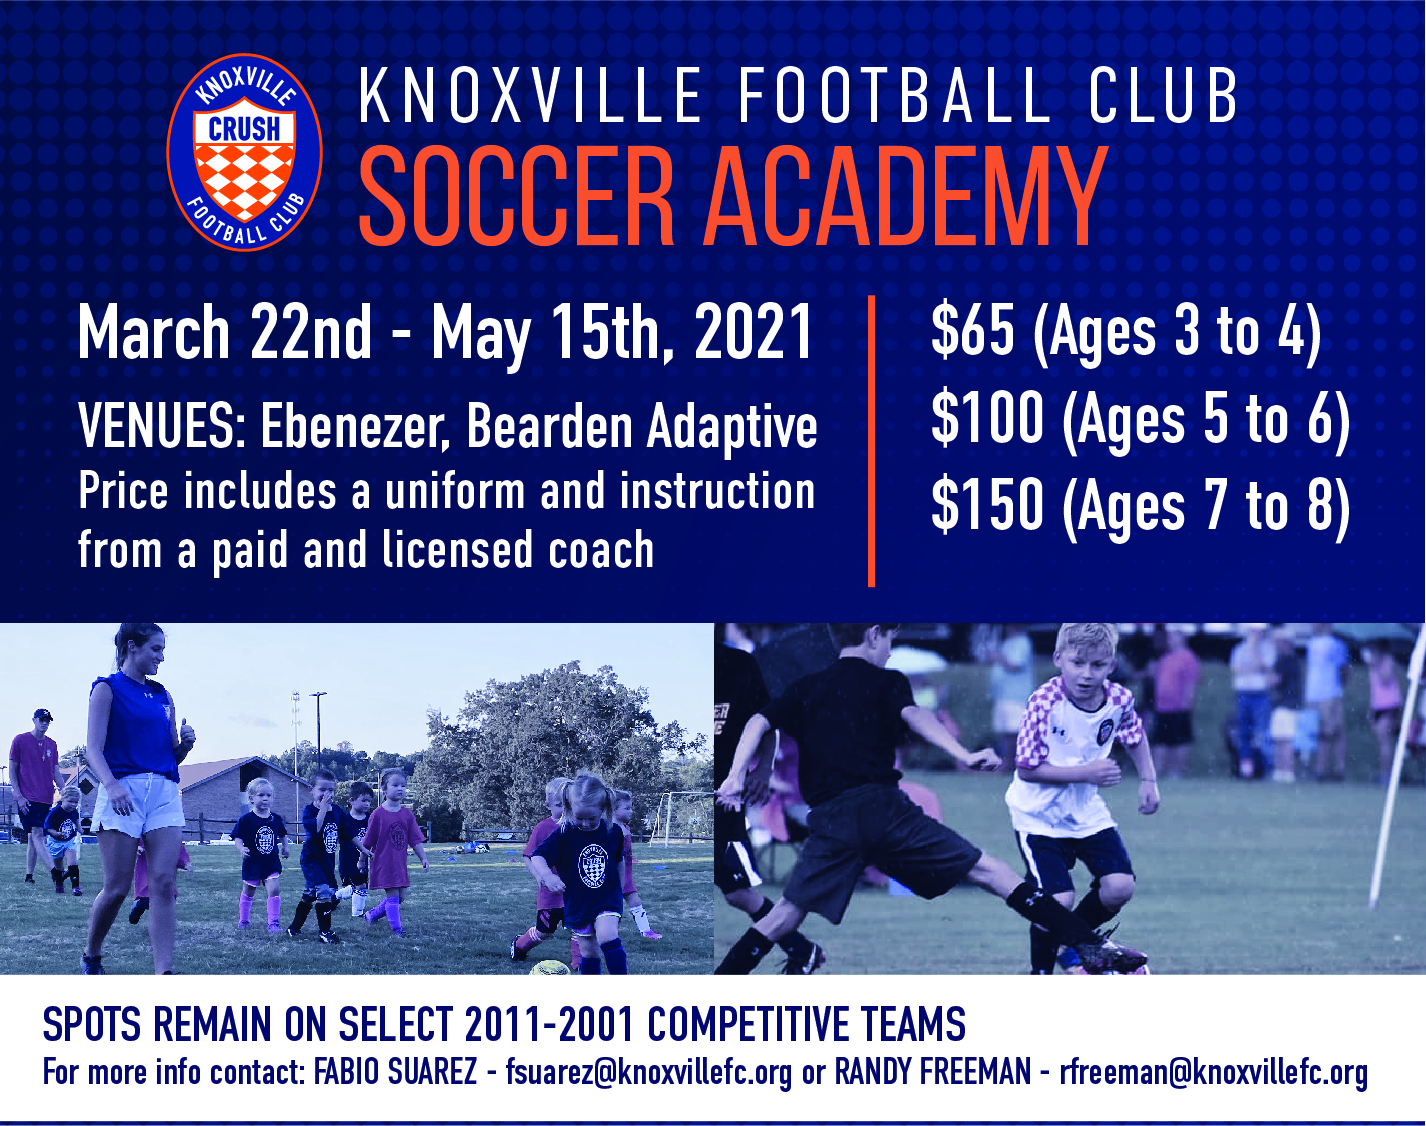 Spring 2021 Crush Academy Knoxville Football Club